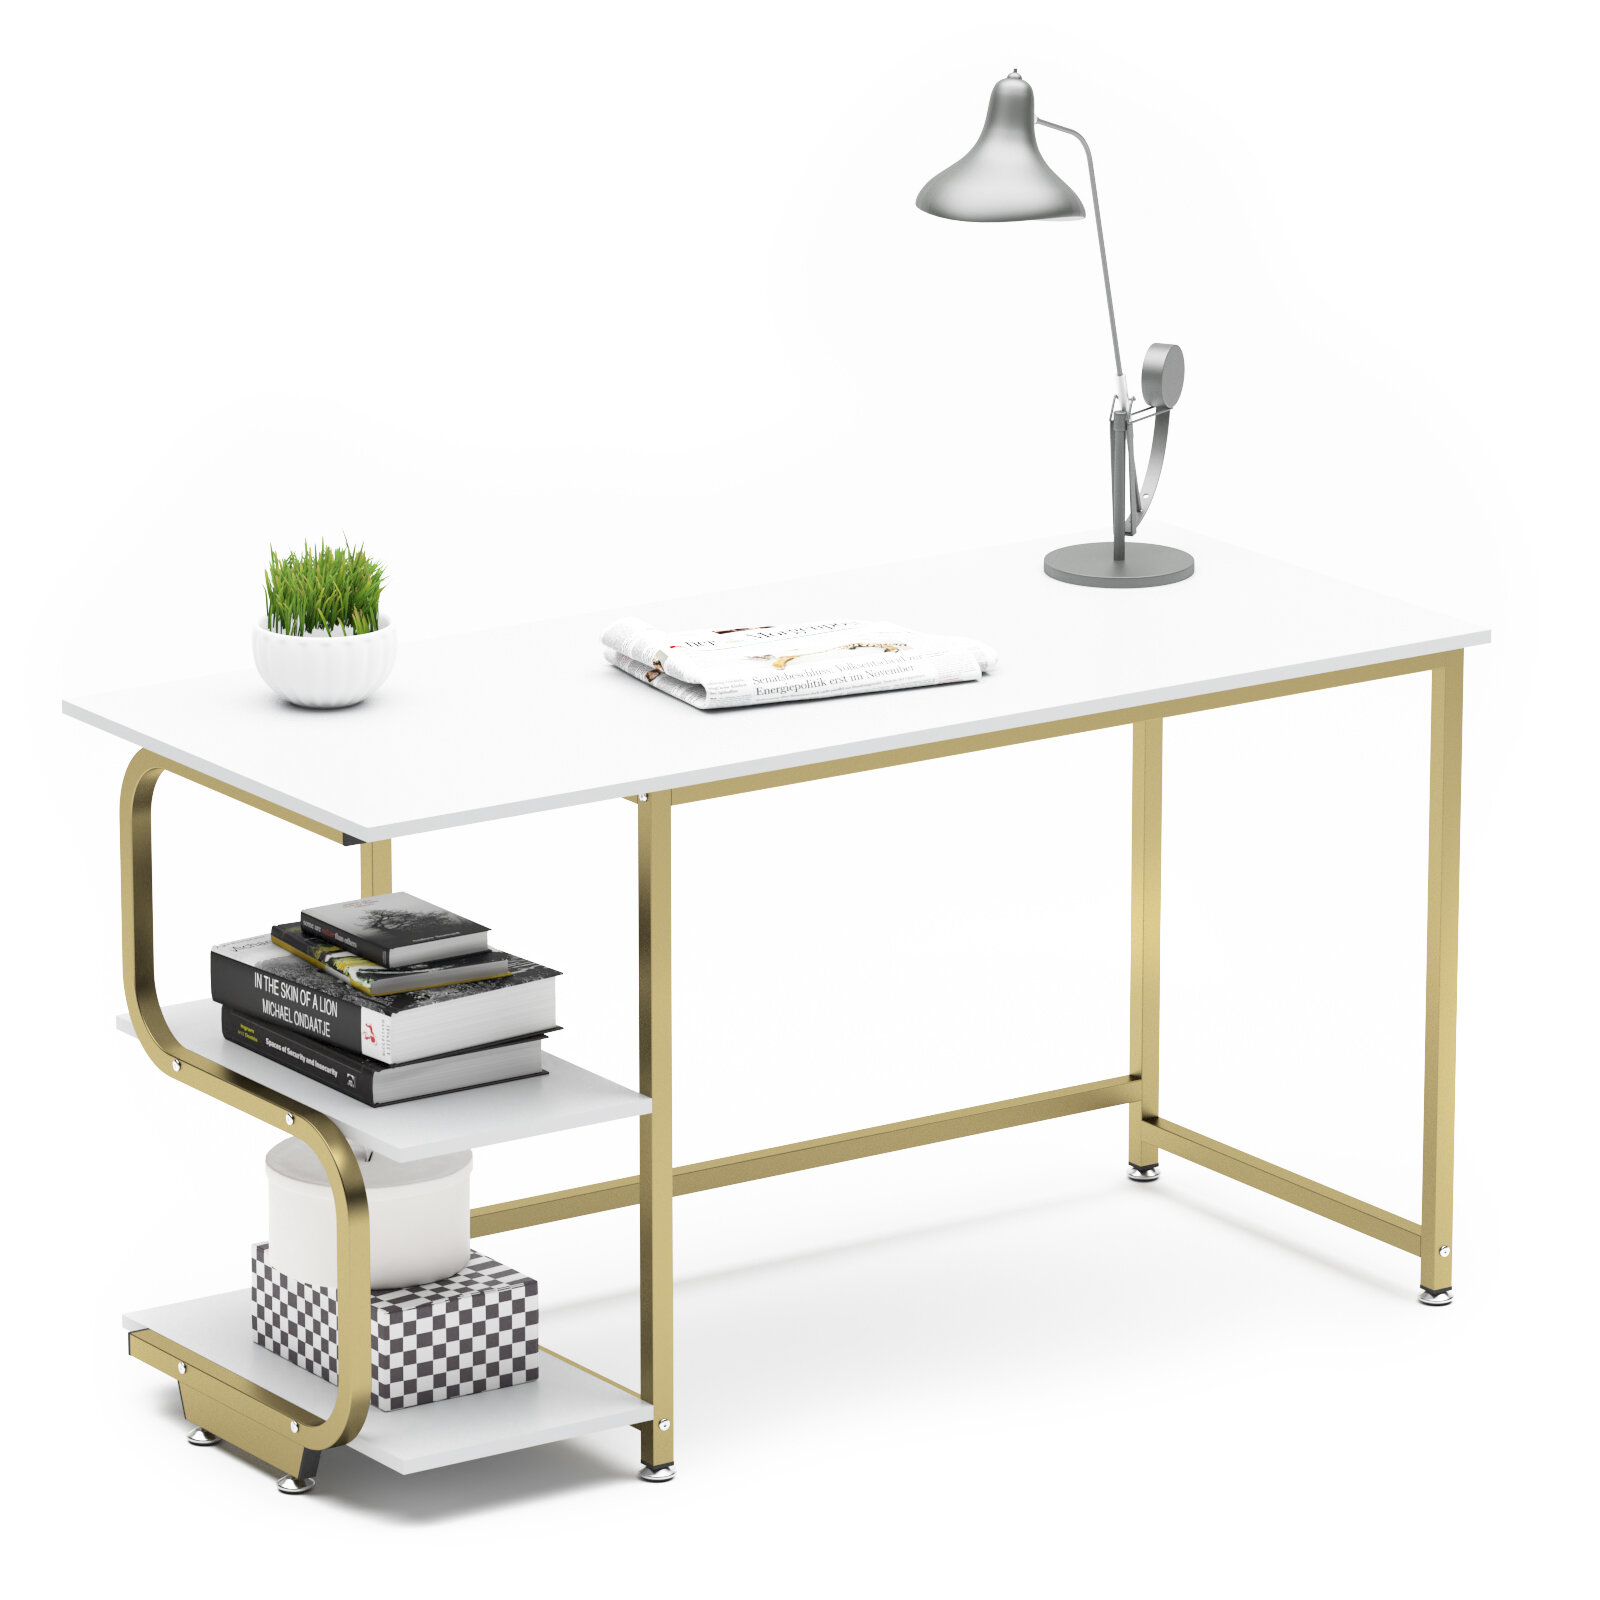 Latitude Run Reversible Computer Desk For Small Spaces With Shelves 47 24 Gaming Desk Office Desk White With Gold Frame For Home Office Reviews